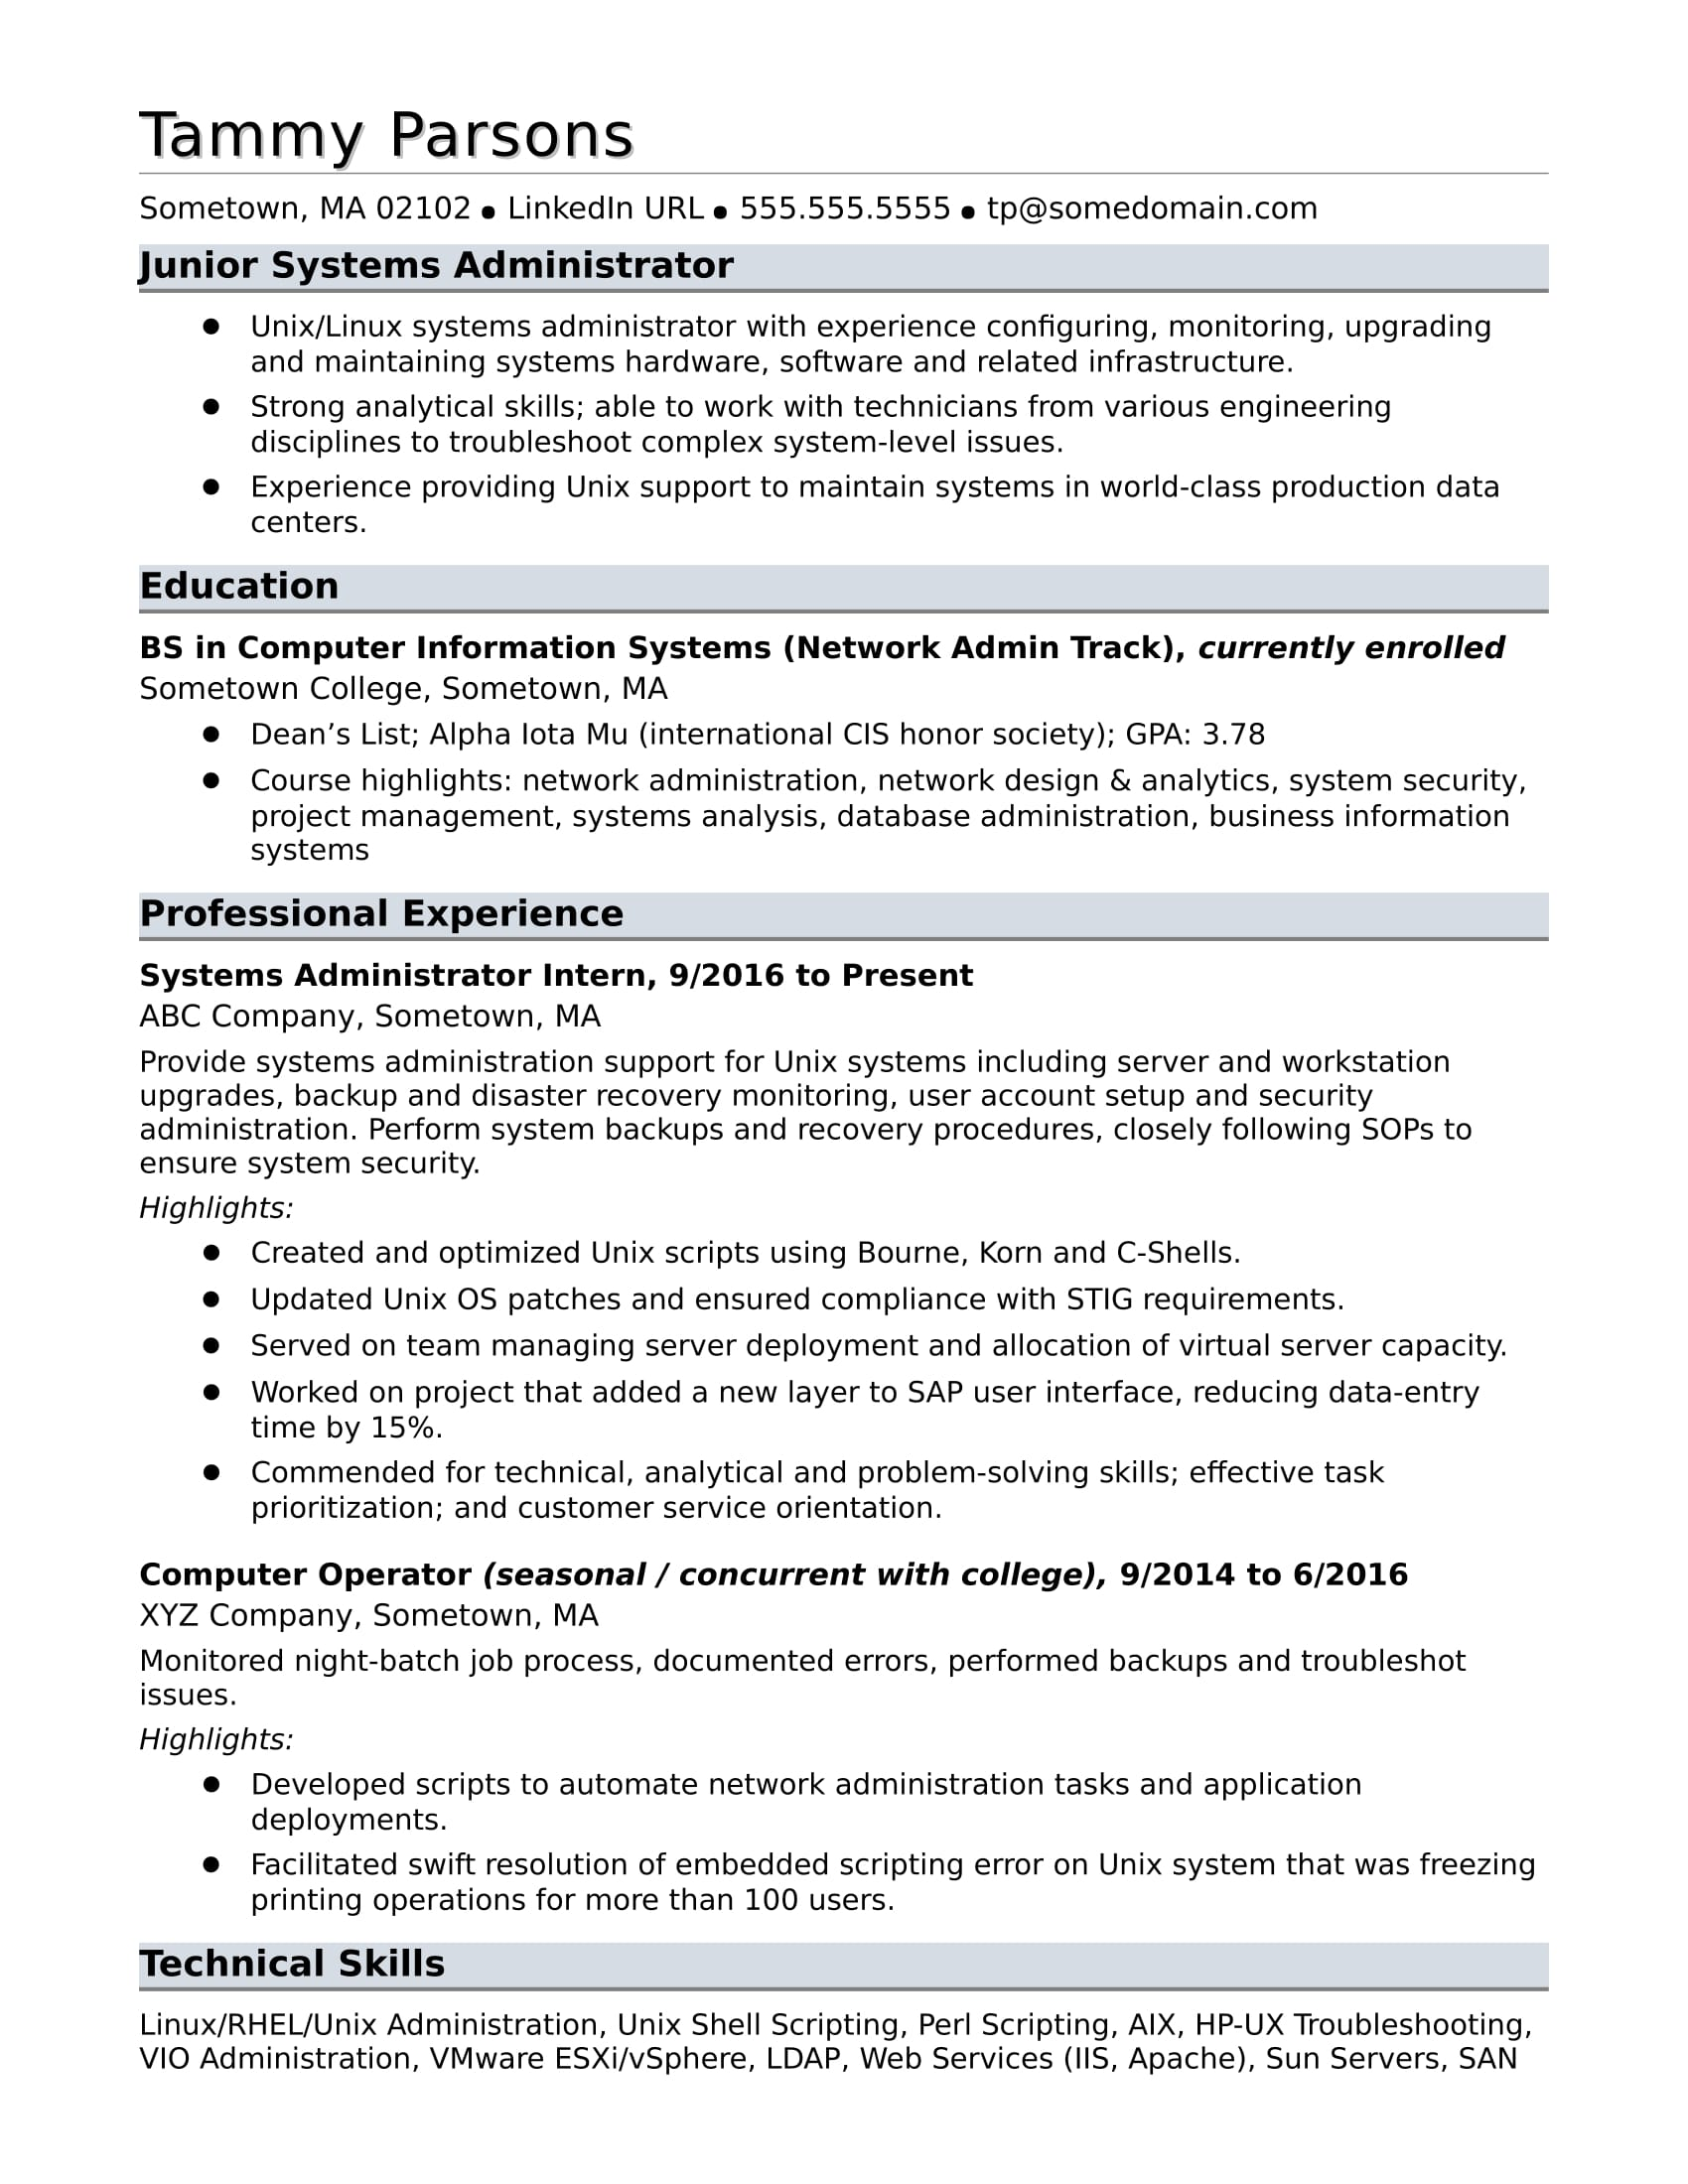 sample resume for an entry level systems administrator monster network engineer scannable Resume Entry Level Network Engineer Resume Sample